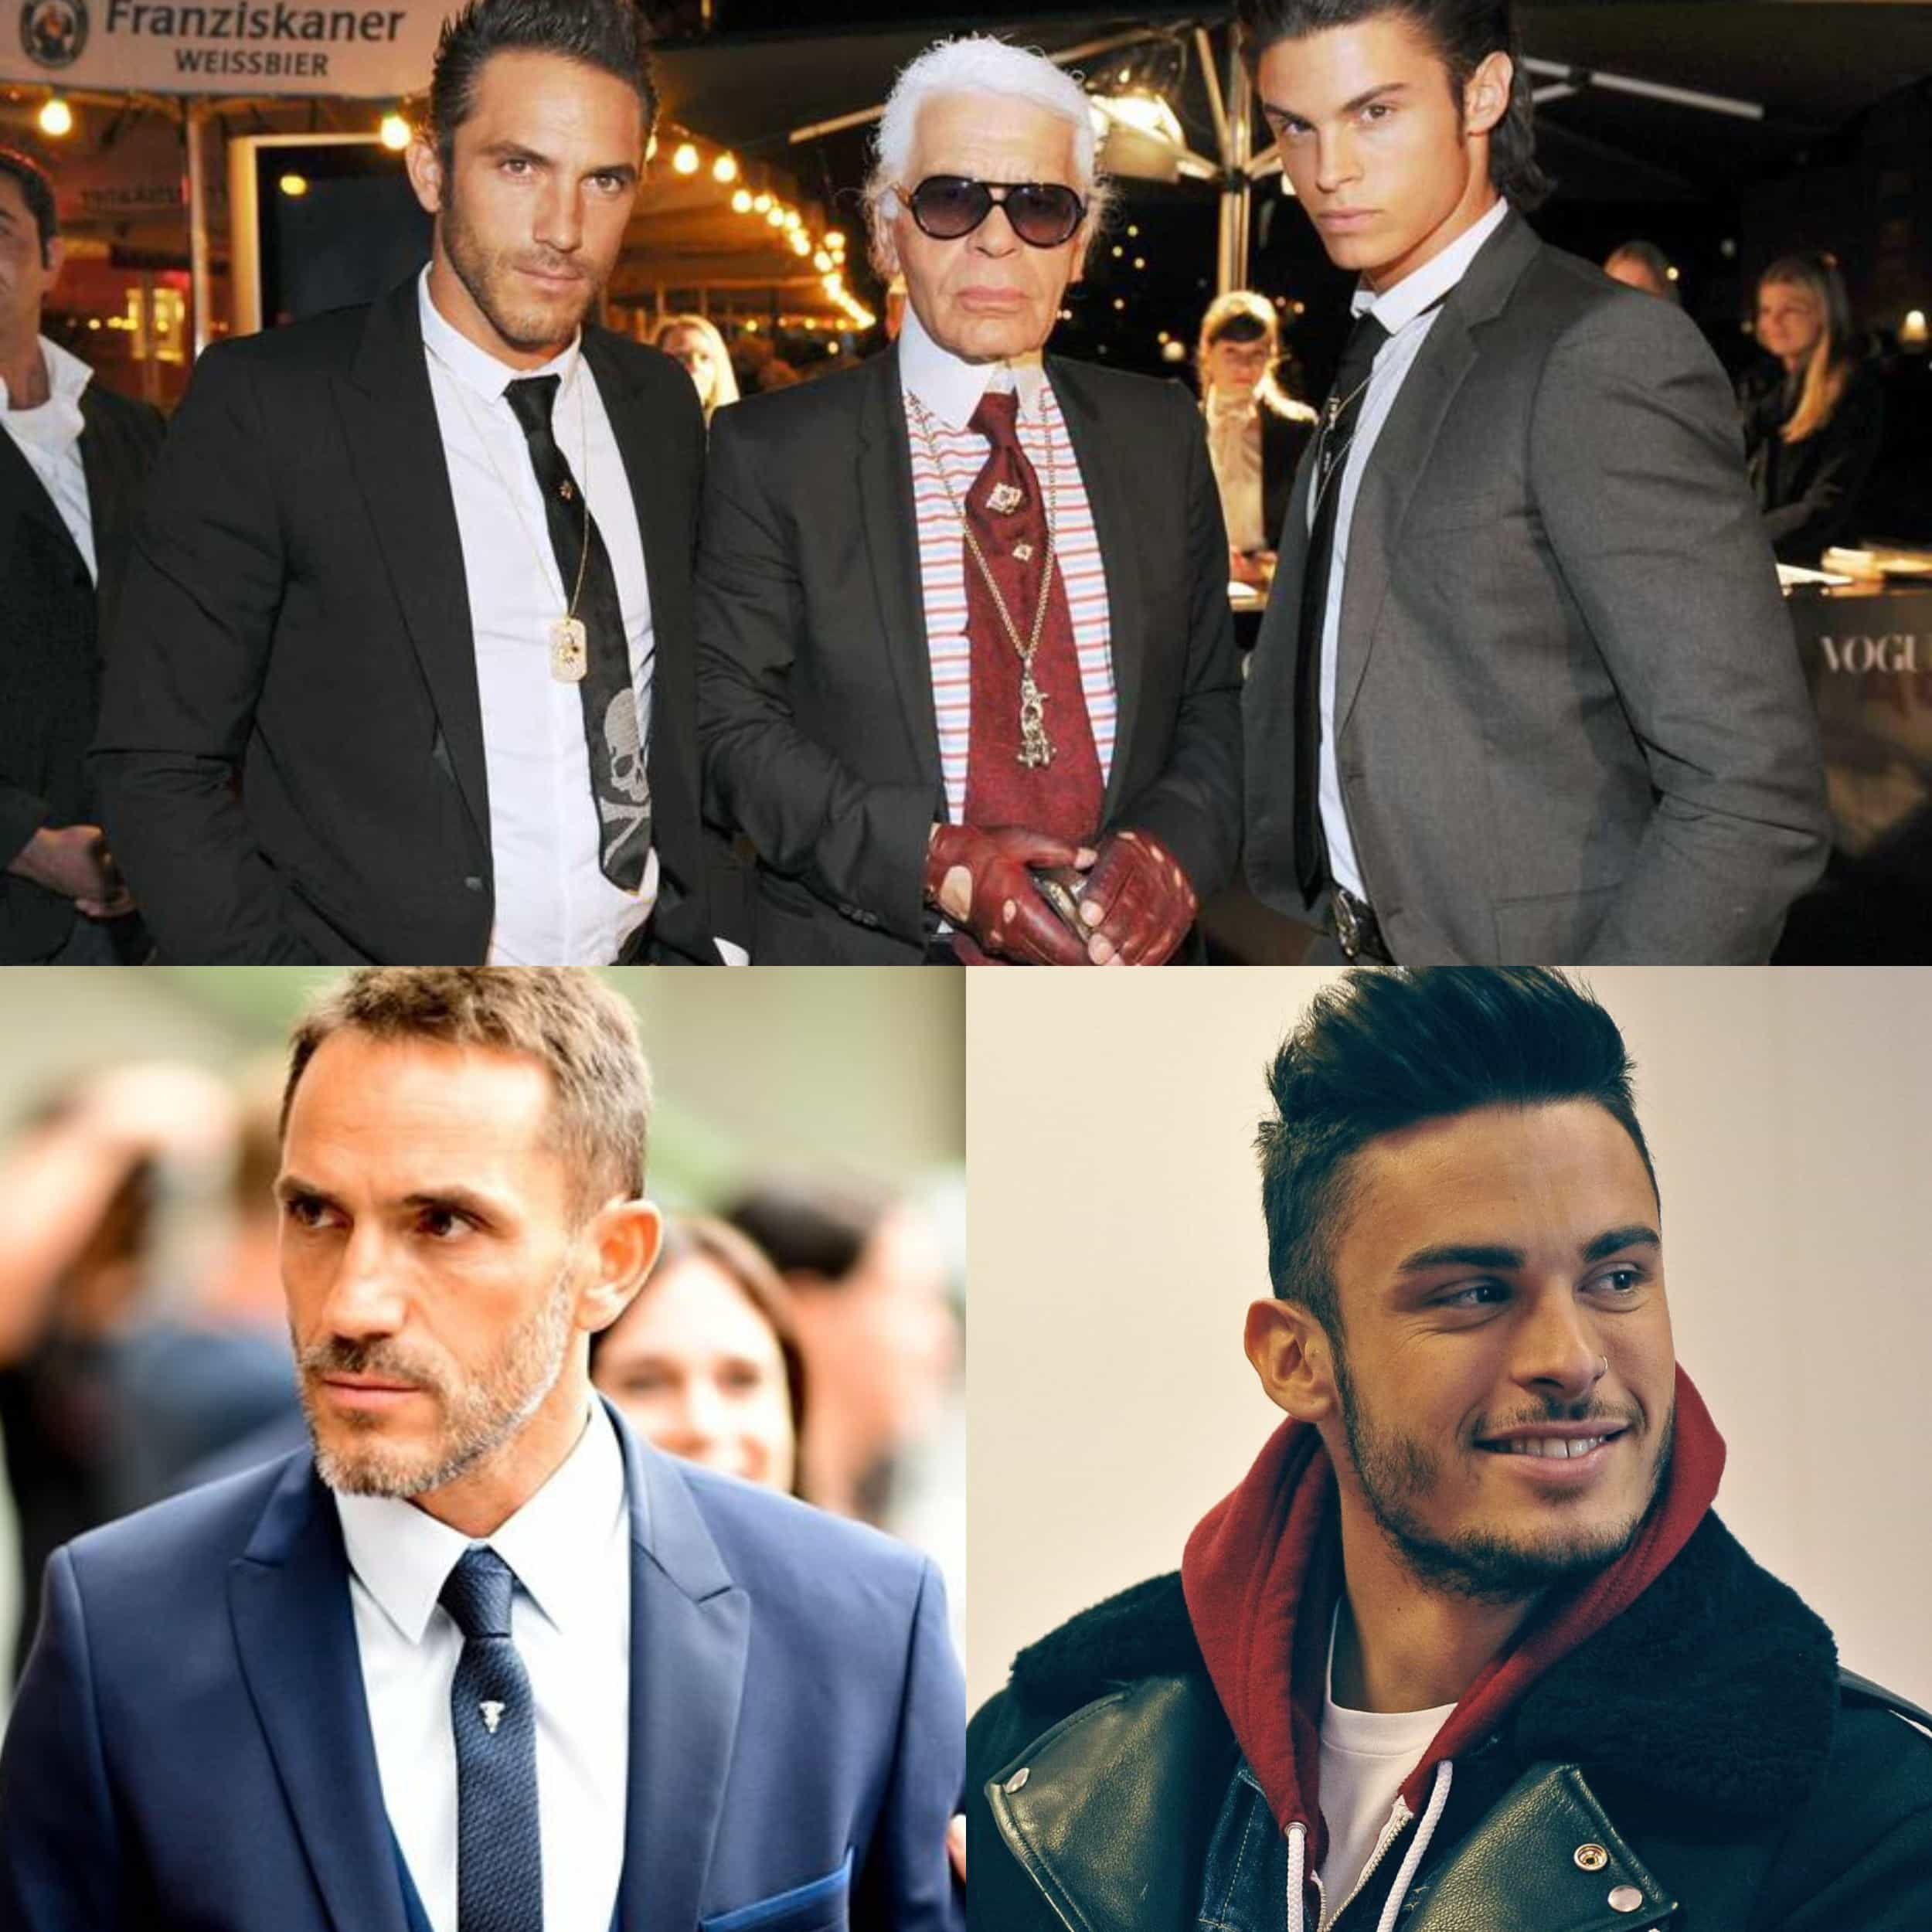 Baptiste Giabiconi and Sébastien Jondeau - in fight for Karl Lagerfeld fortune